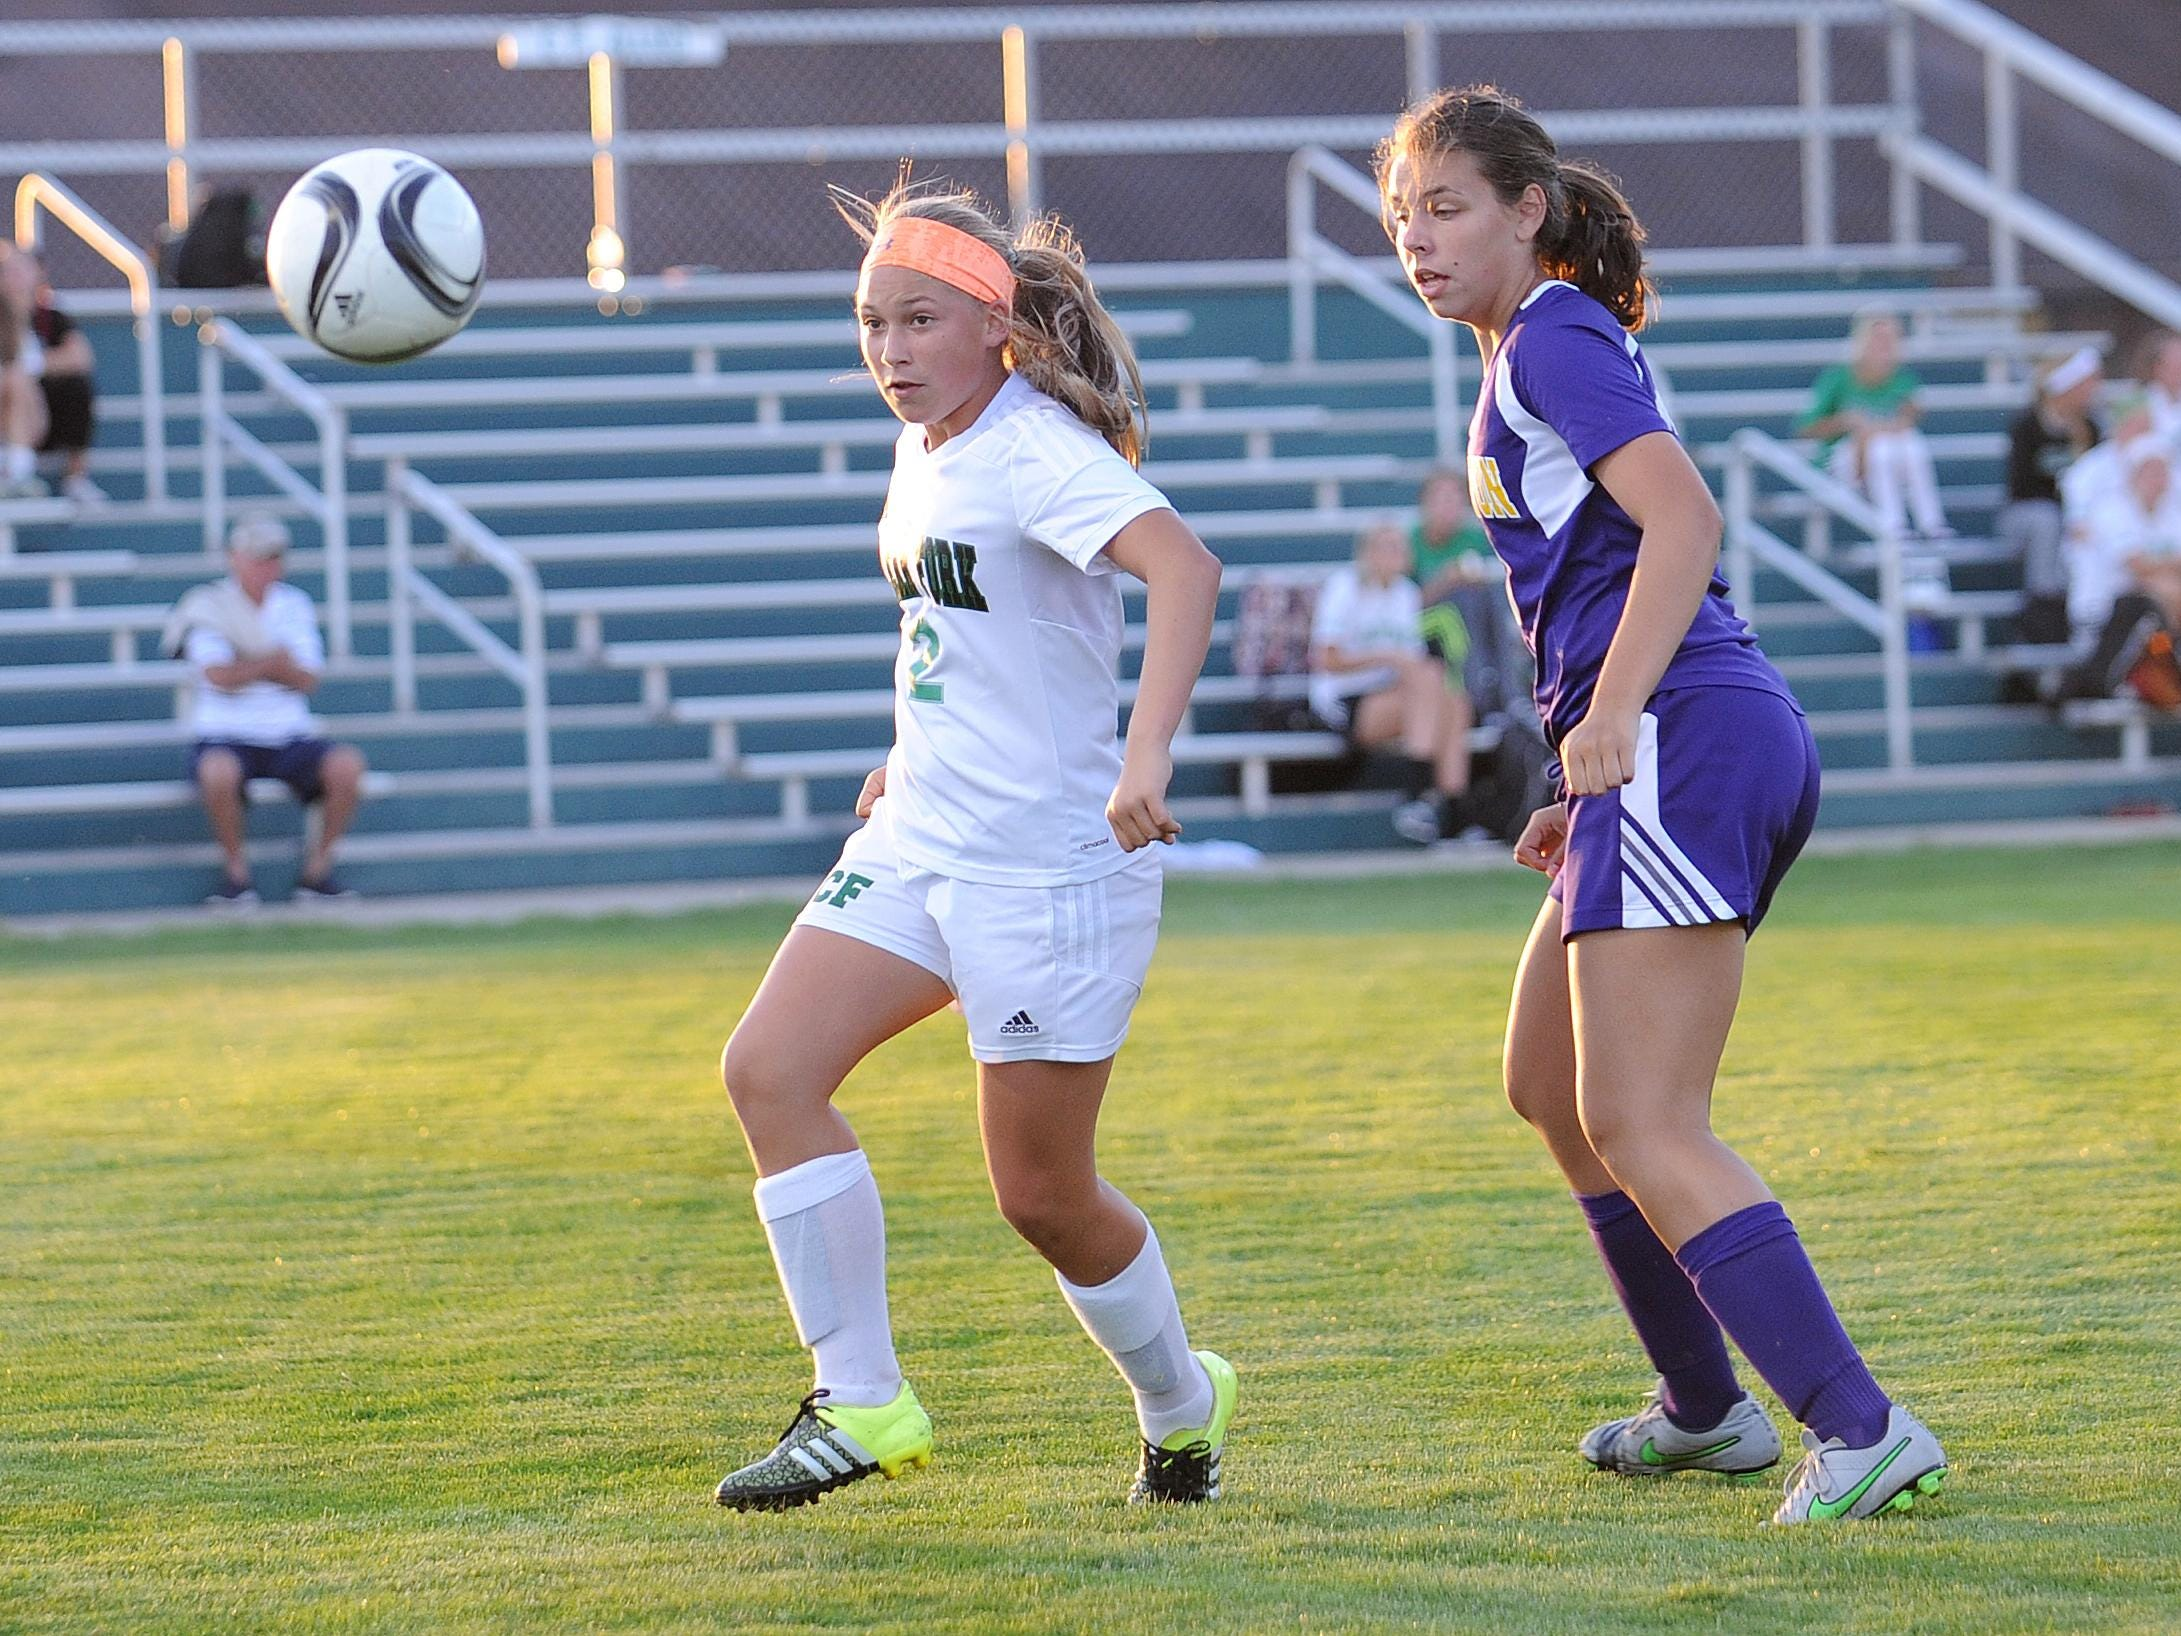 Clear Fork's Kaylin Helinski battles for control over the ball Tuesday evening during their game against Lexington.